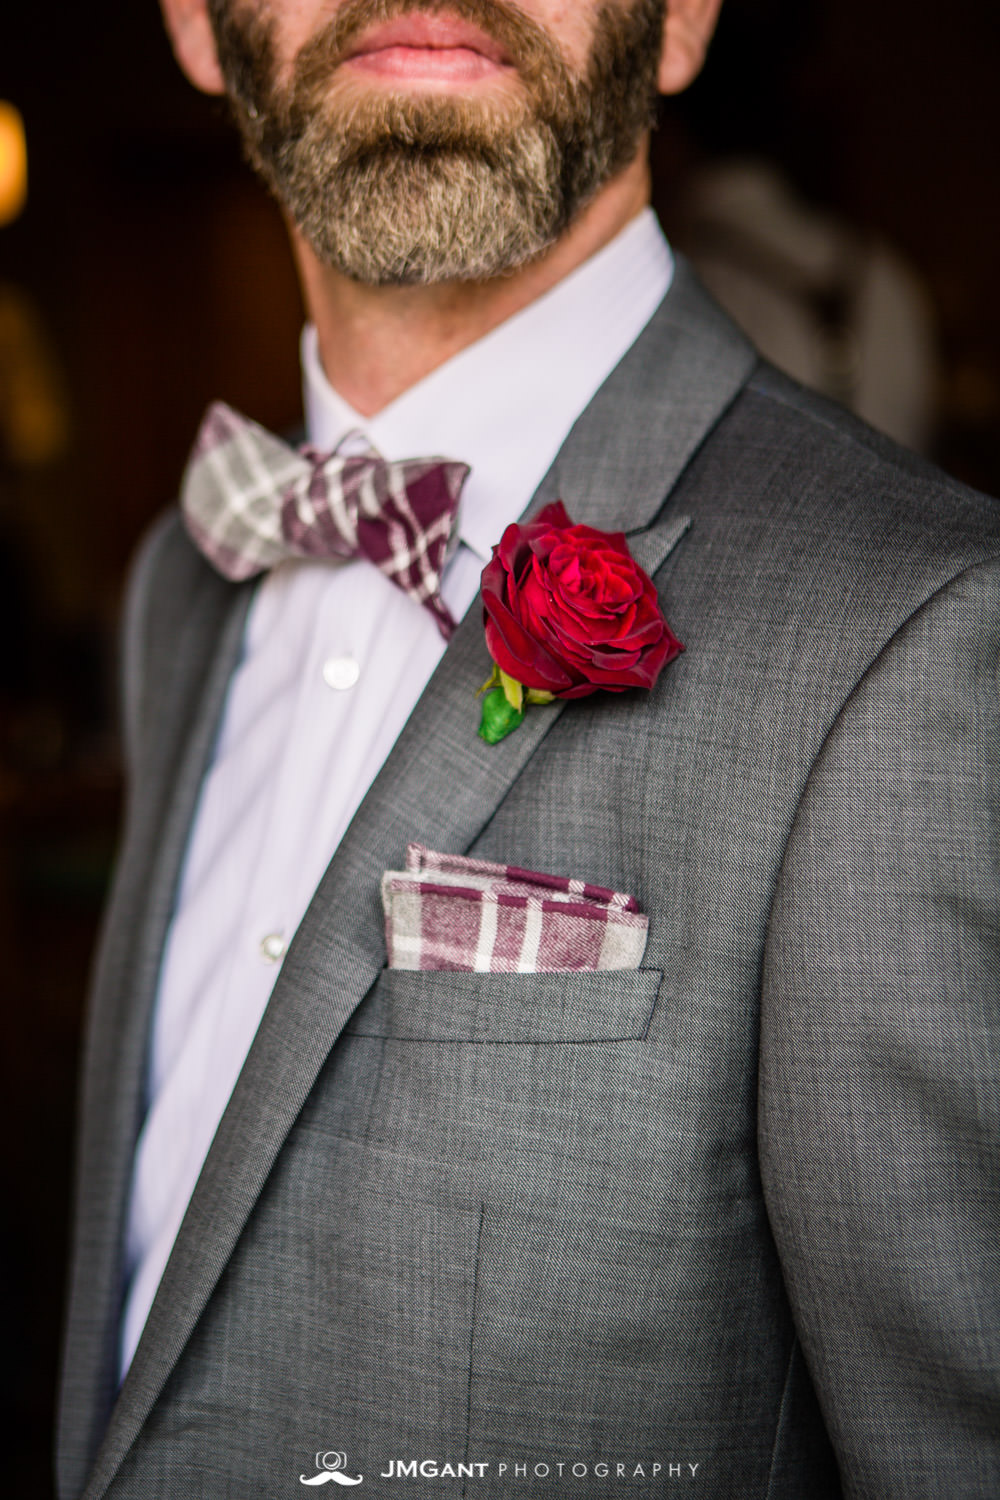 Groom getting ready for a fun Winter Park, mountain wedding at the Lodge at Sunspot, photographed by JMGant Photography